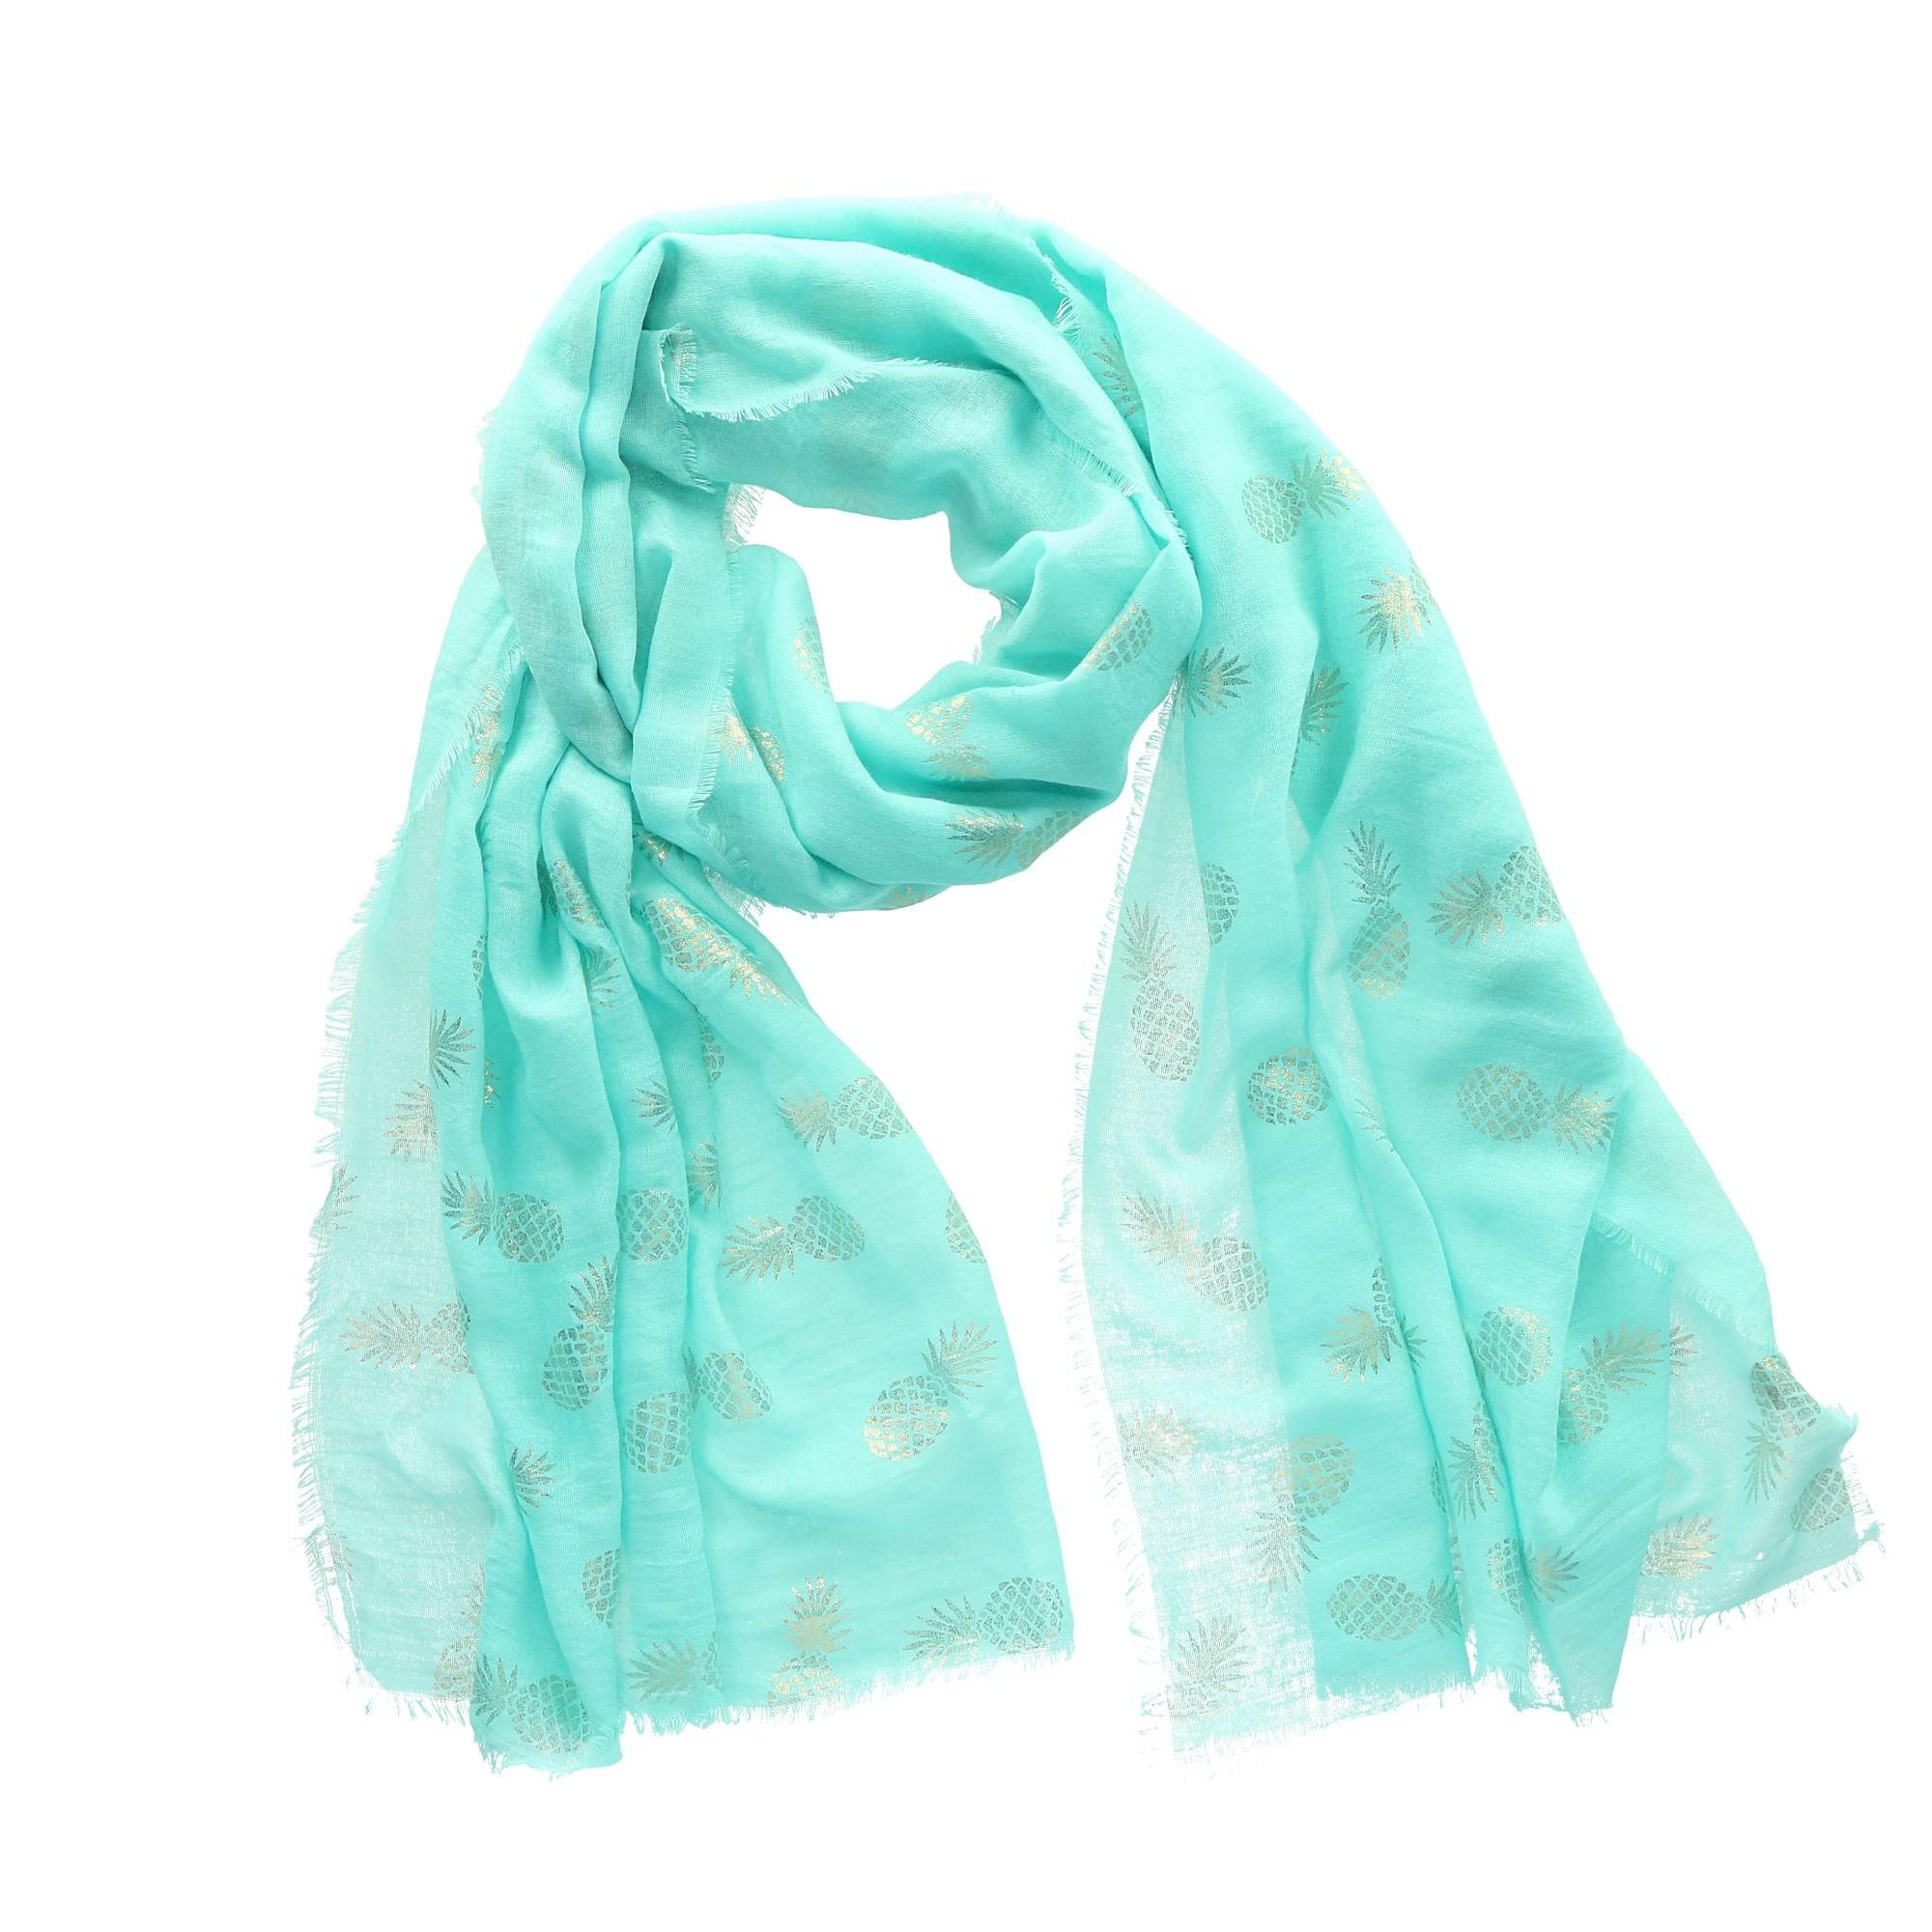 CTM Women's Foil Pineapple Print Scarf, Mint